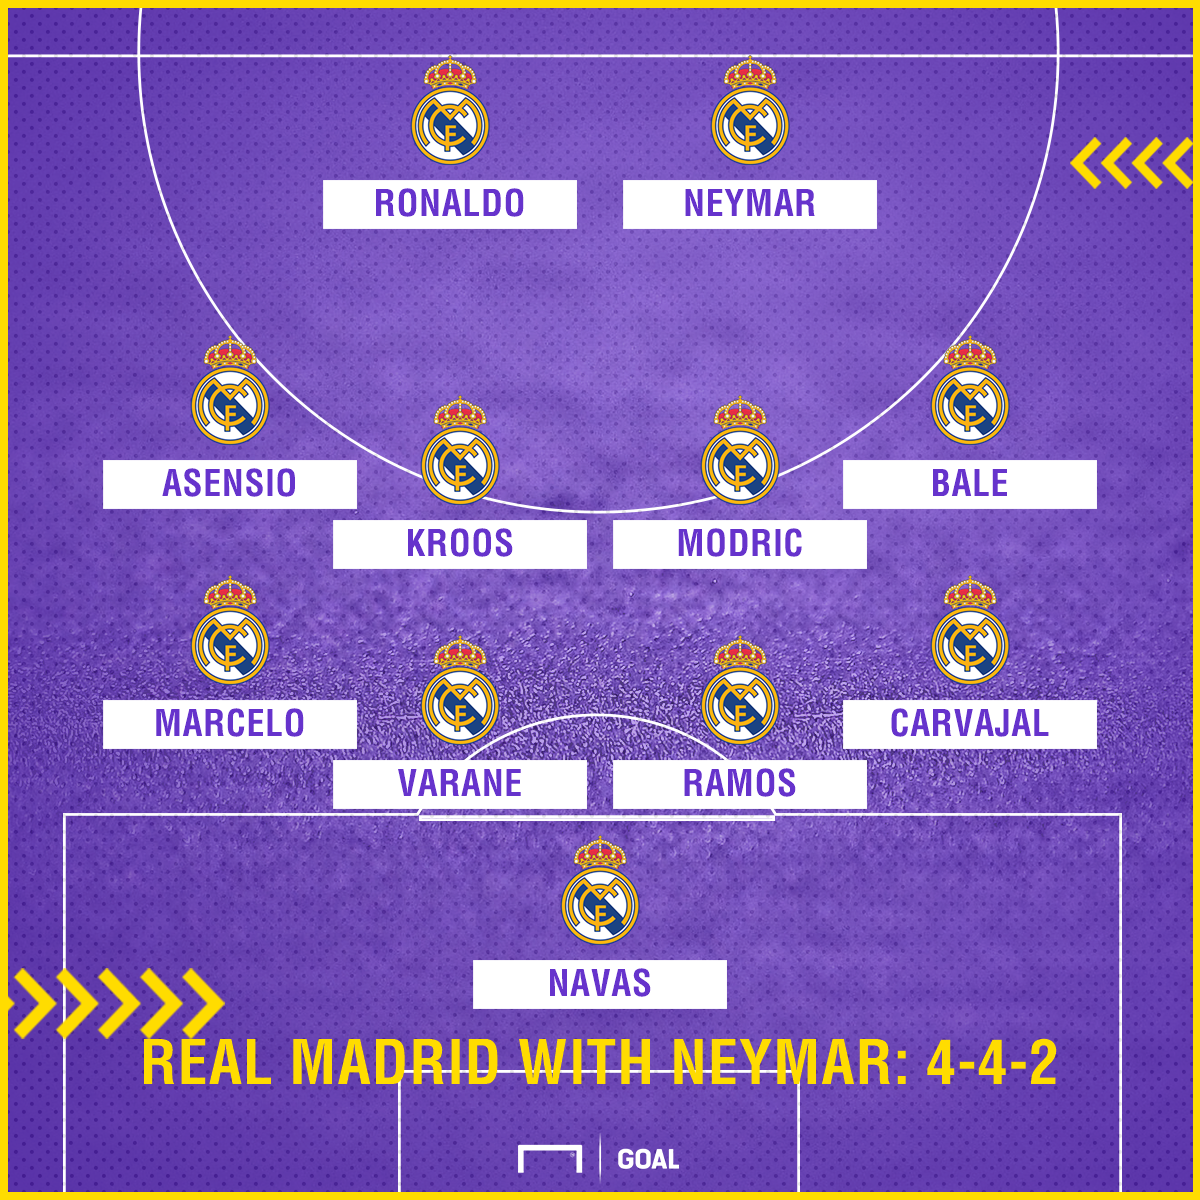 Real Madrid with Neymar 4-4-2